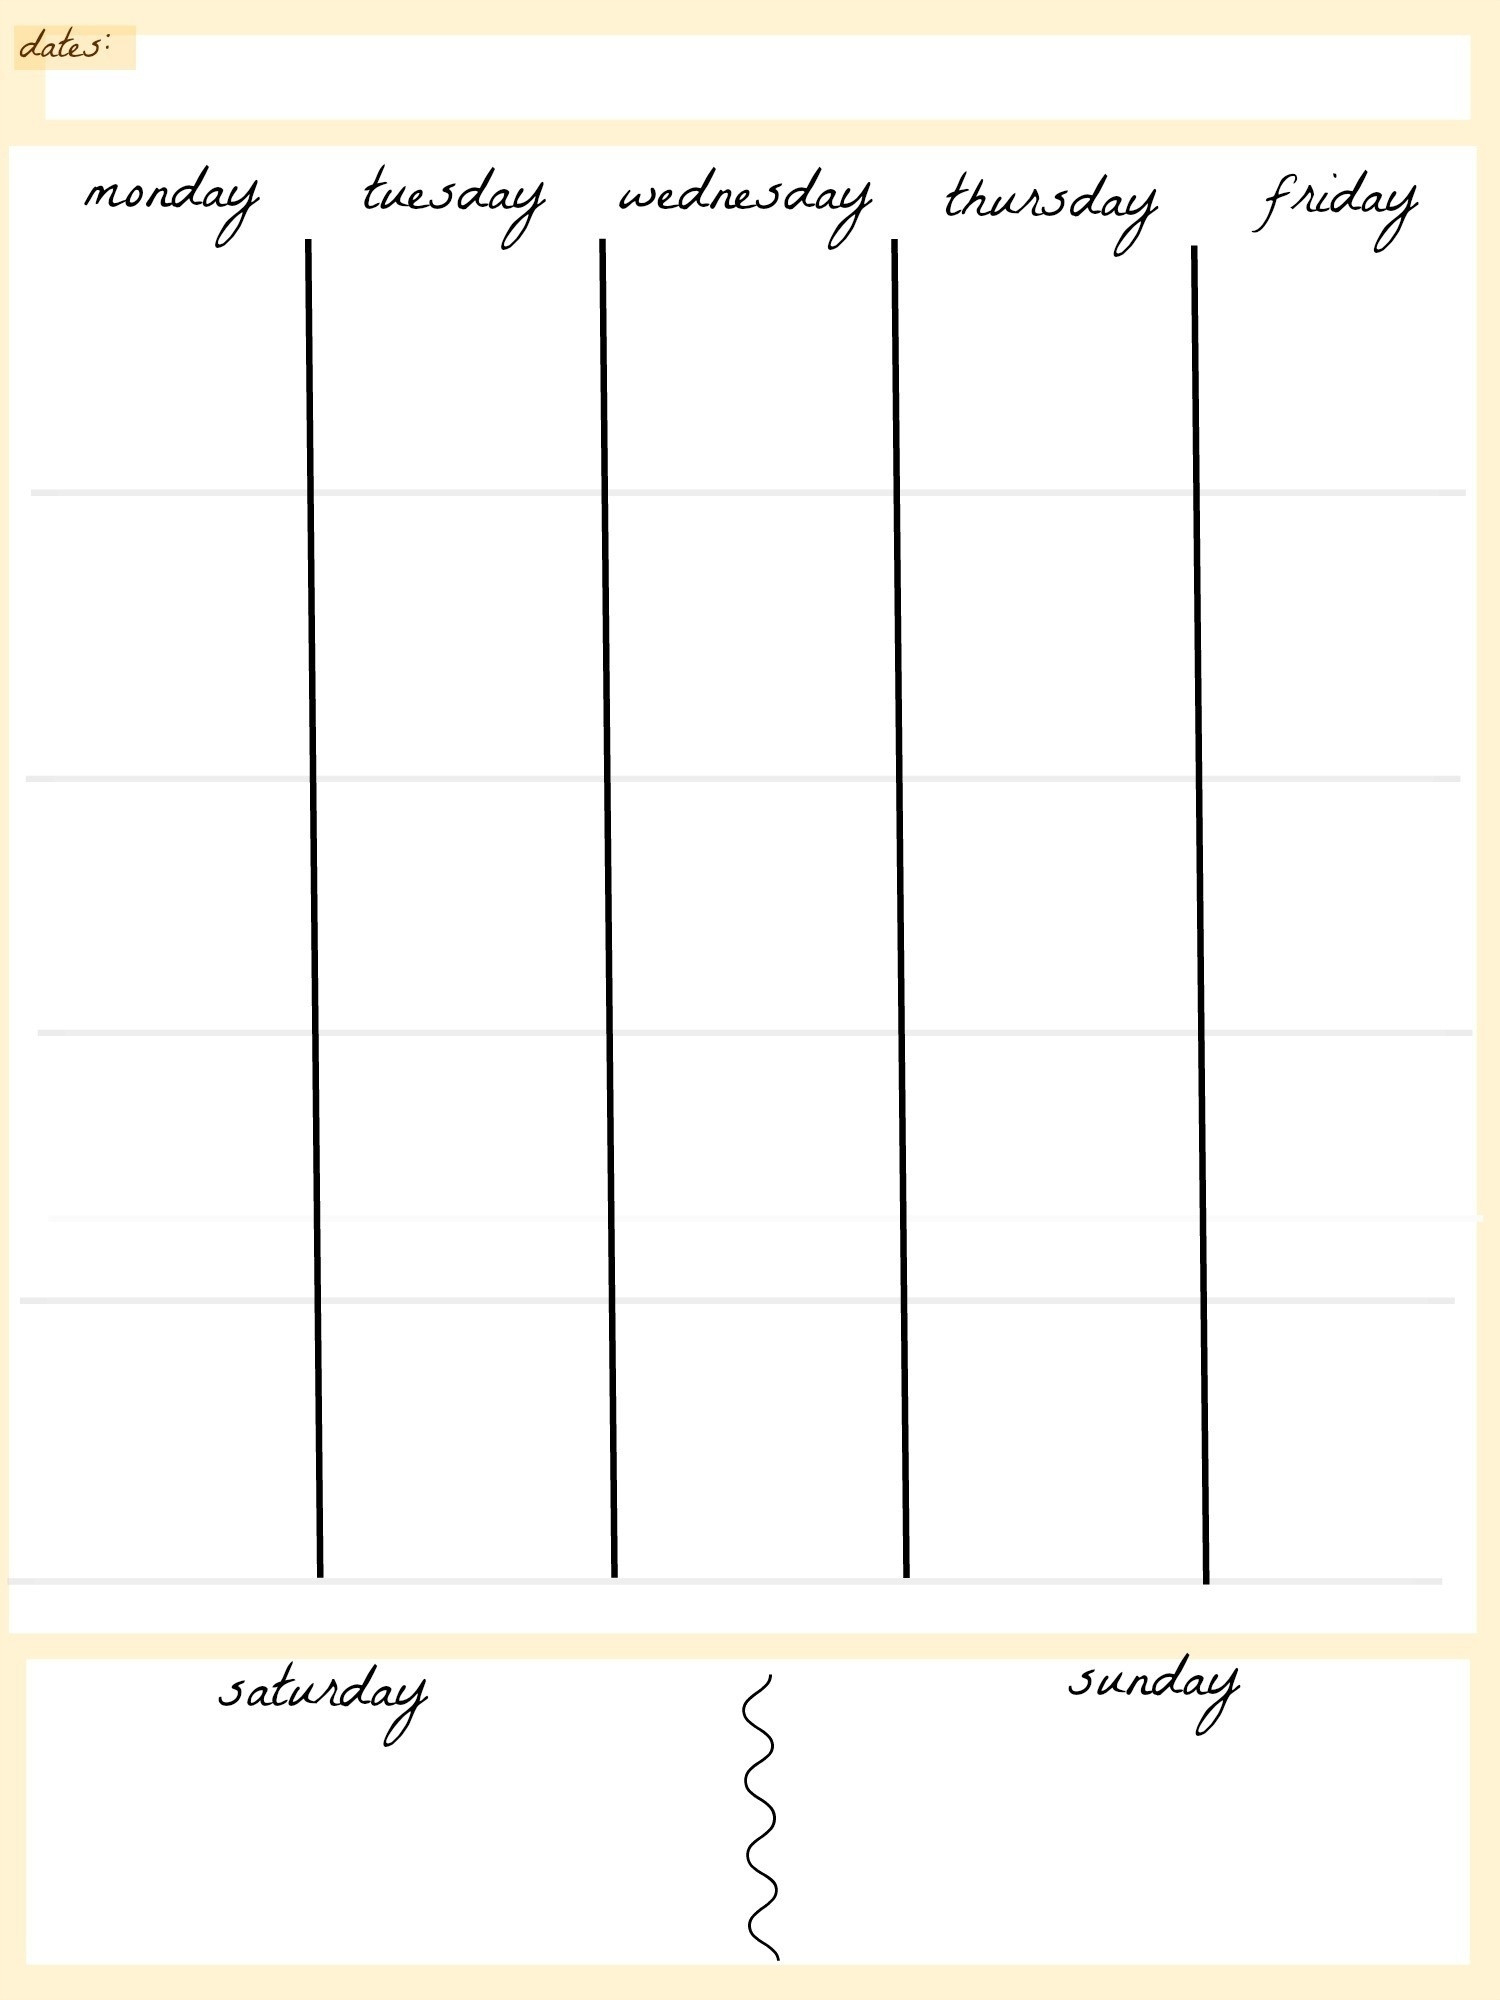 Free Blank Calendar Template 5 Day Week - Template  Printable Day And Time Calendars